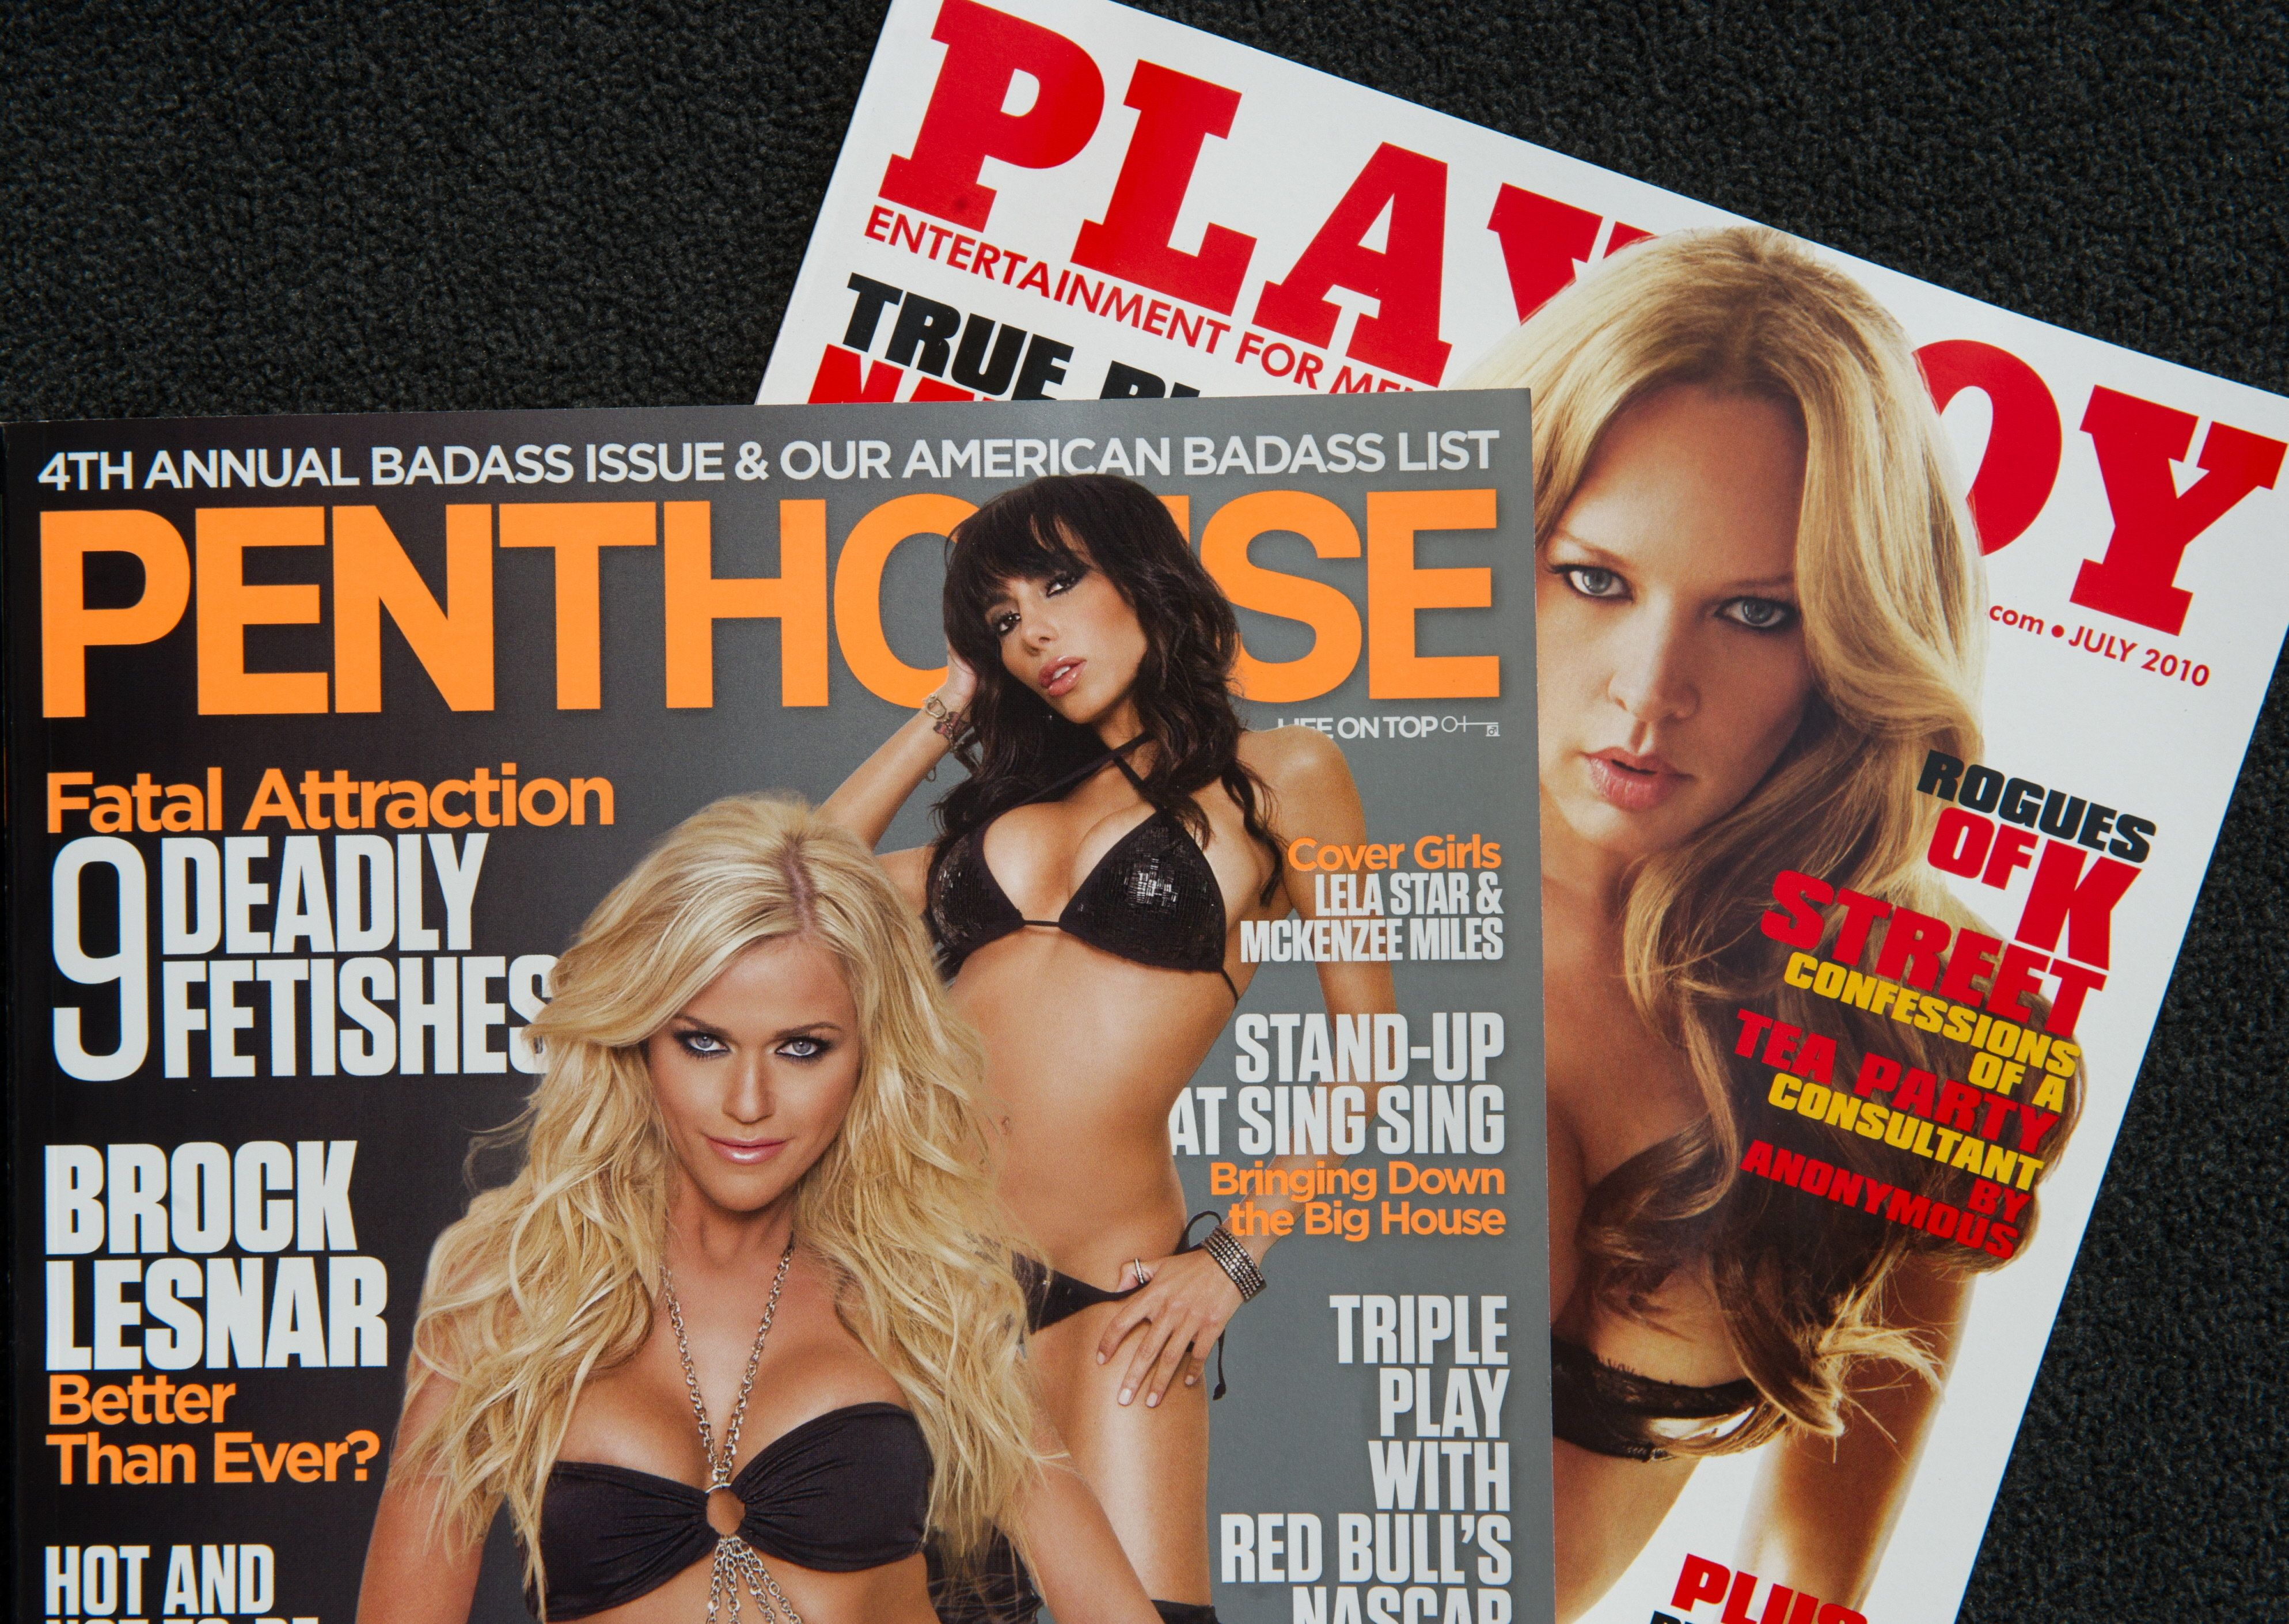 Penthouse Offers $1 Million For Compromising Trump